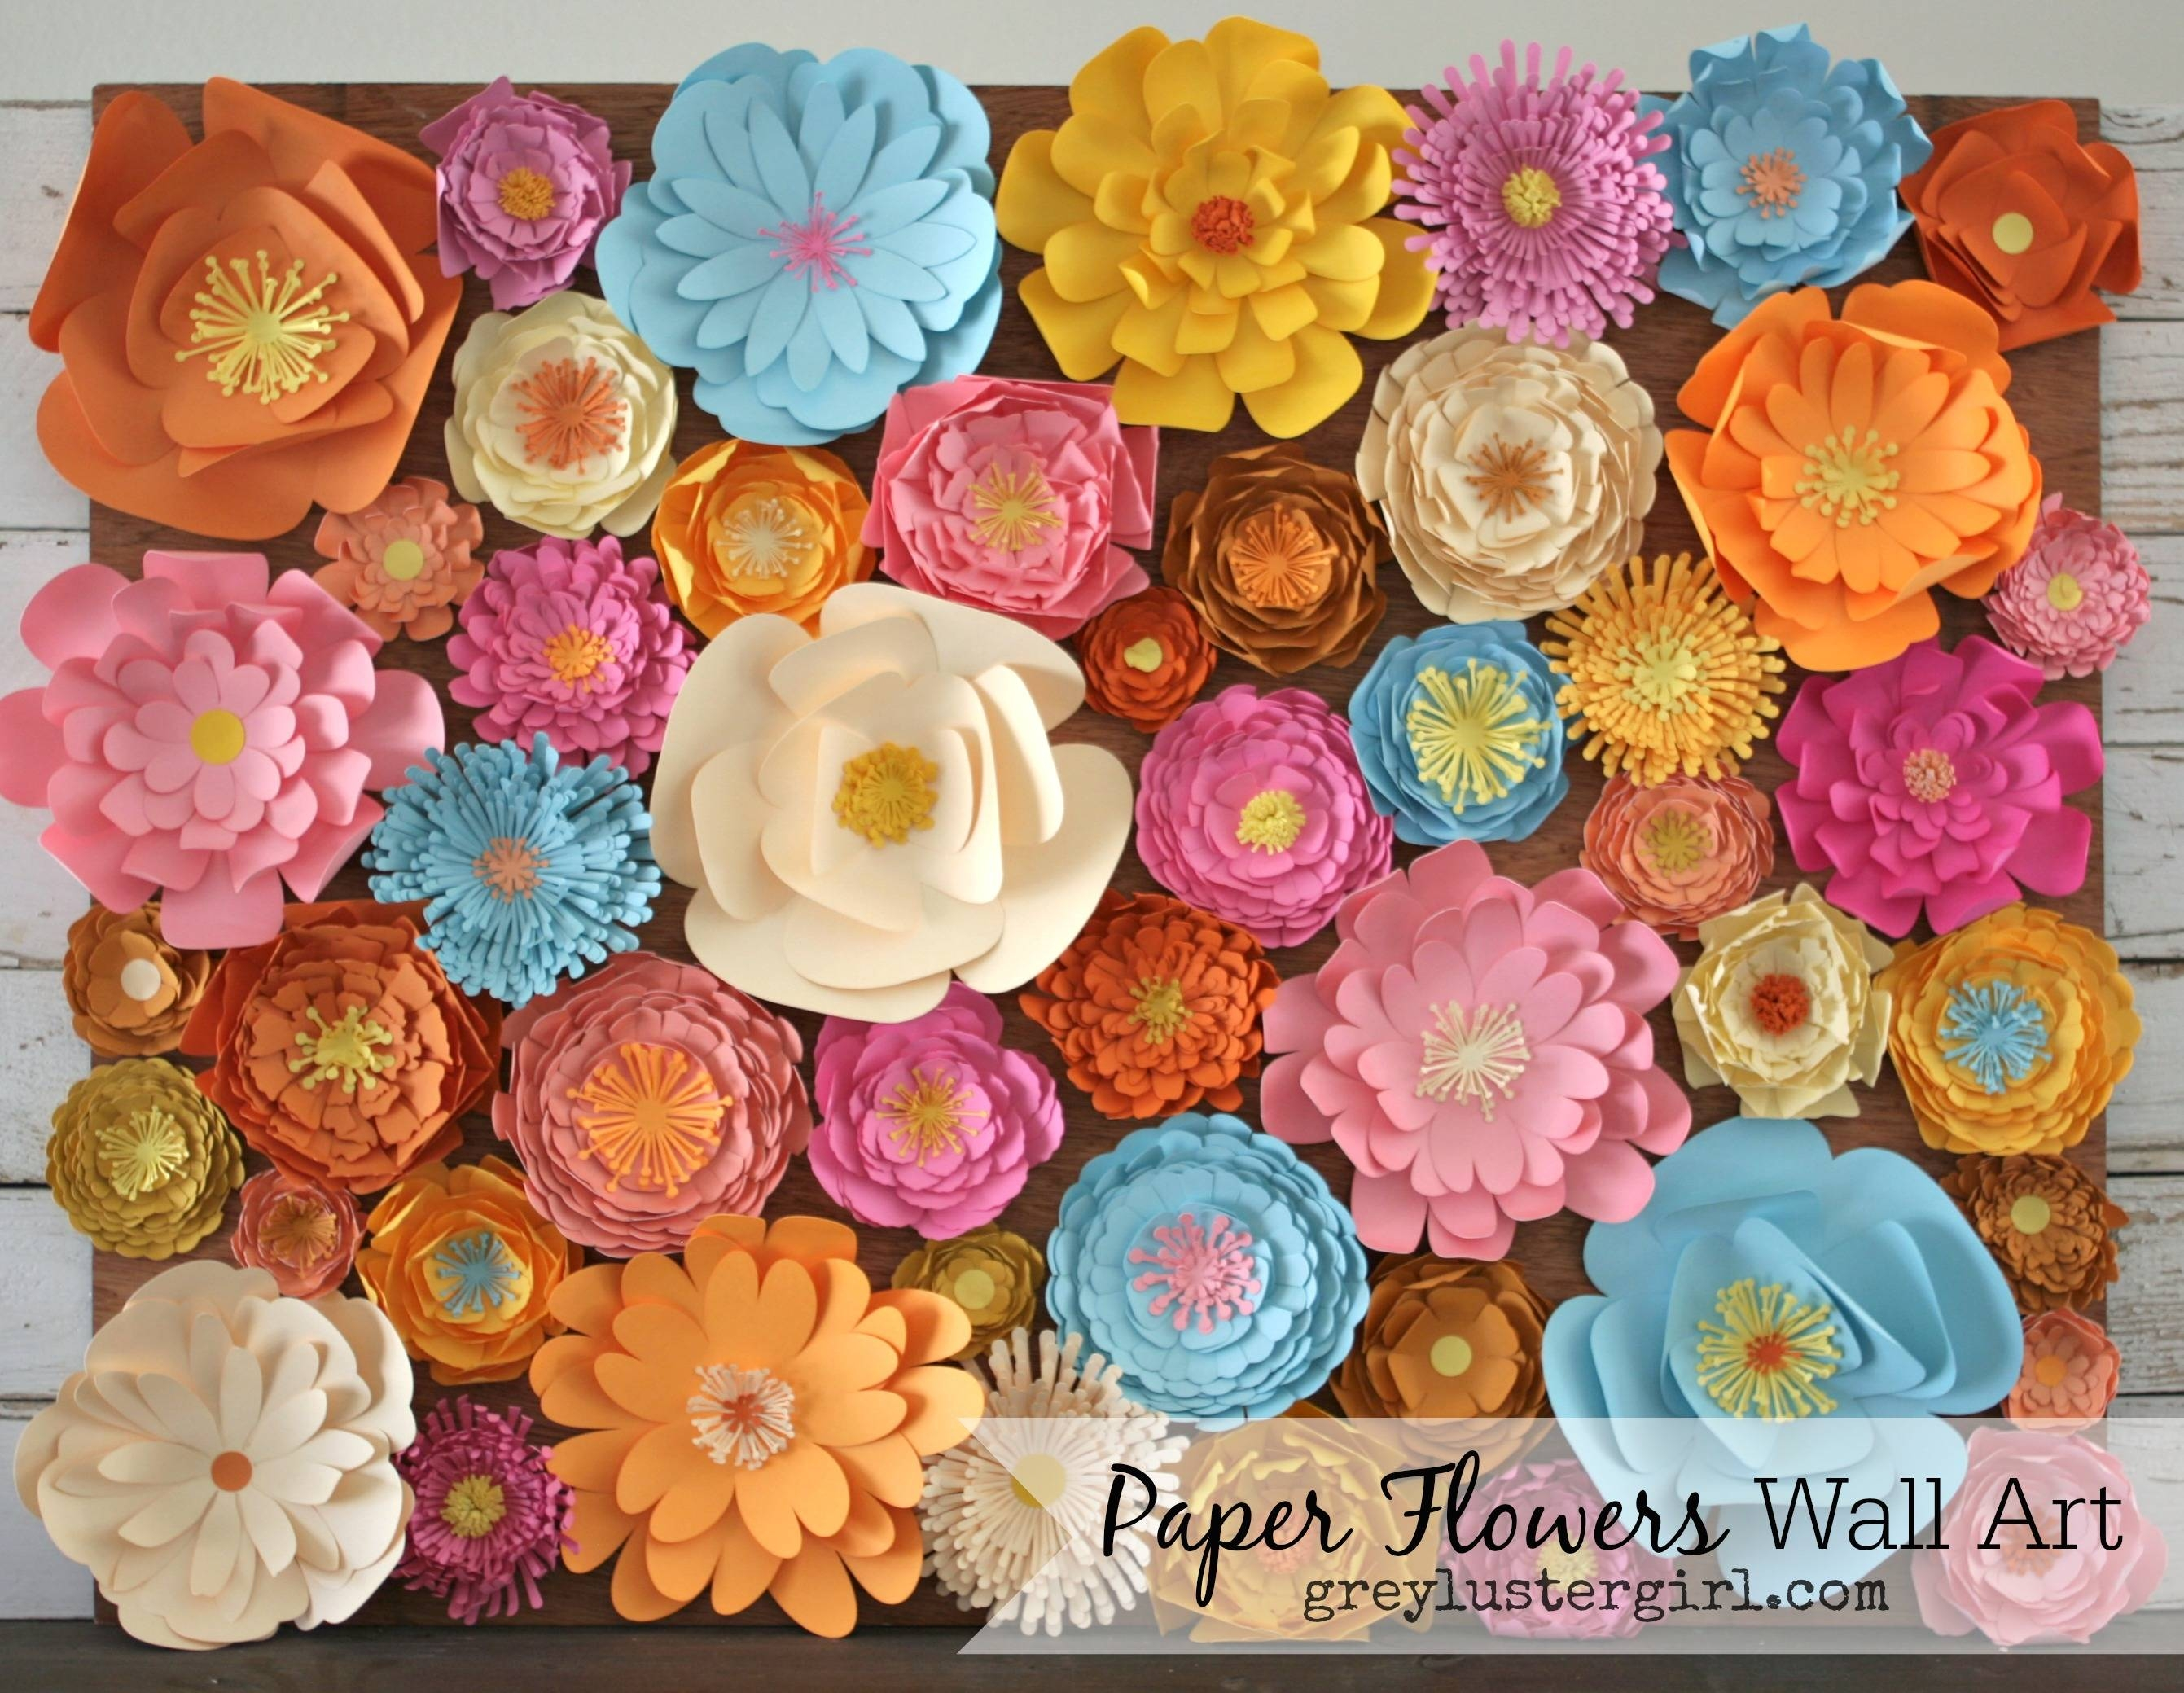 Paper Flowers Wall Art – For Most Current Flowers 3D Wall Art (View 18 of 20)